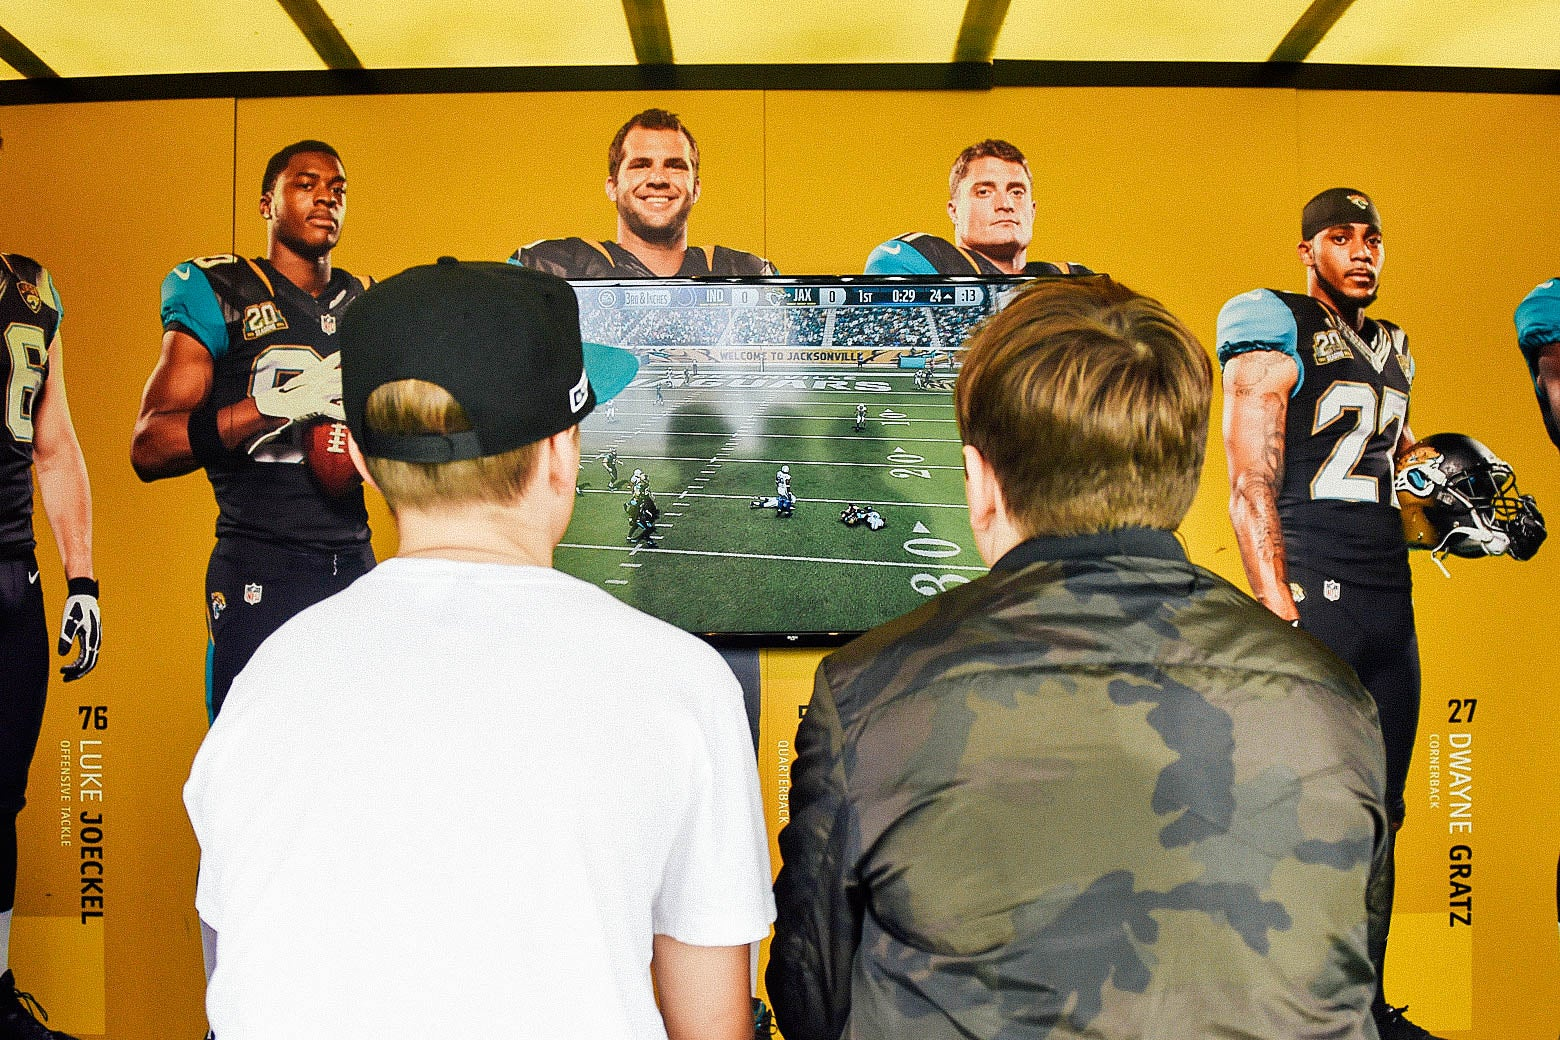 Two young men's backs are toward the gamer as they play Madden on a TV screen.